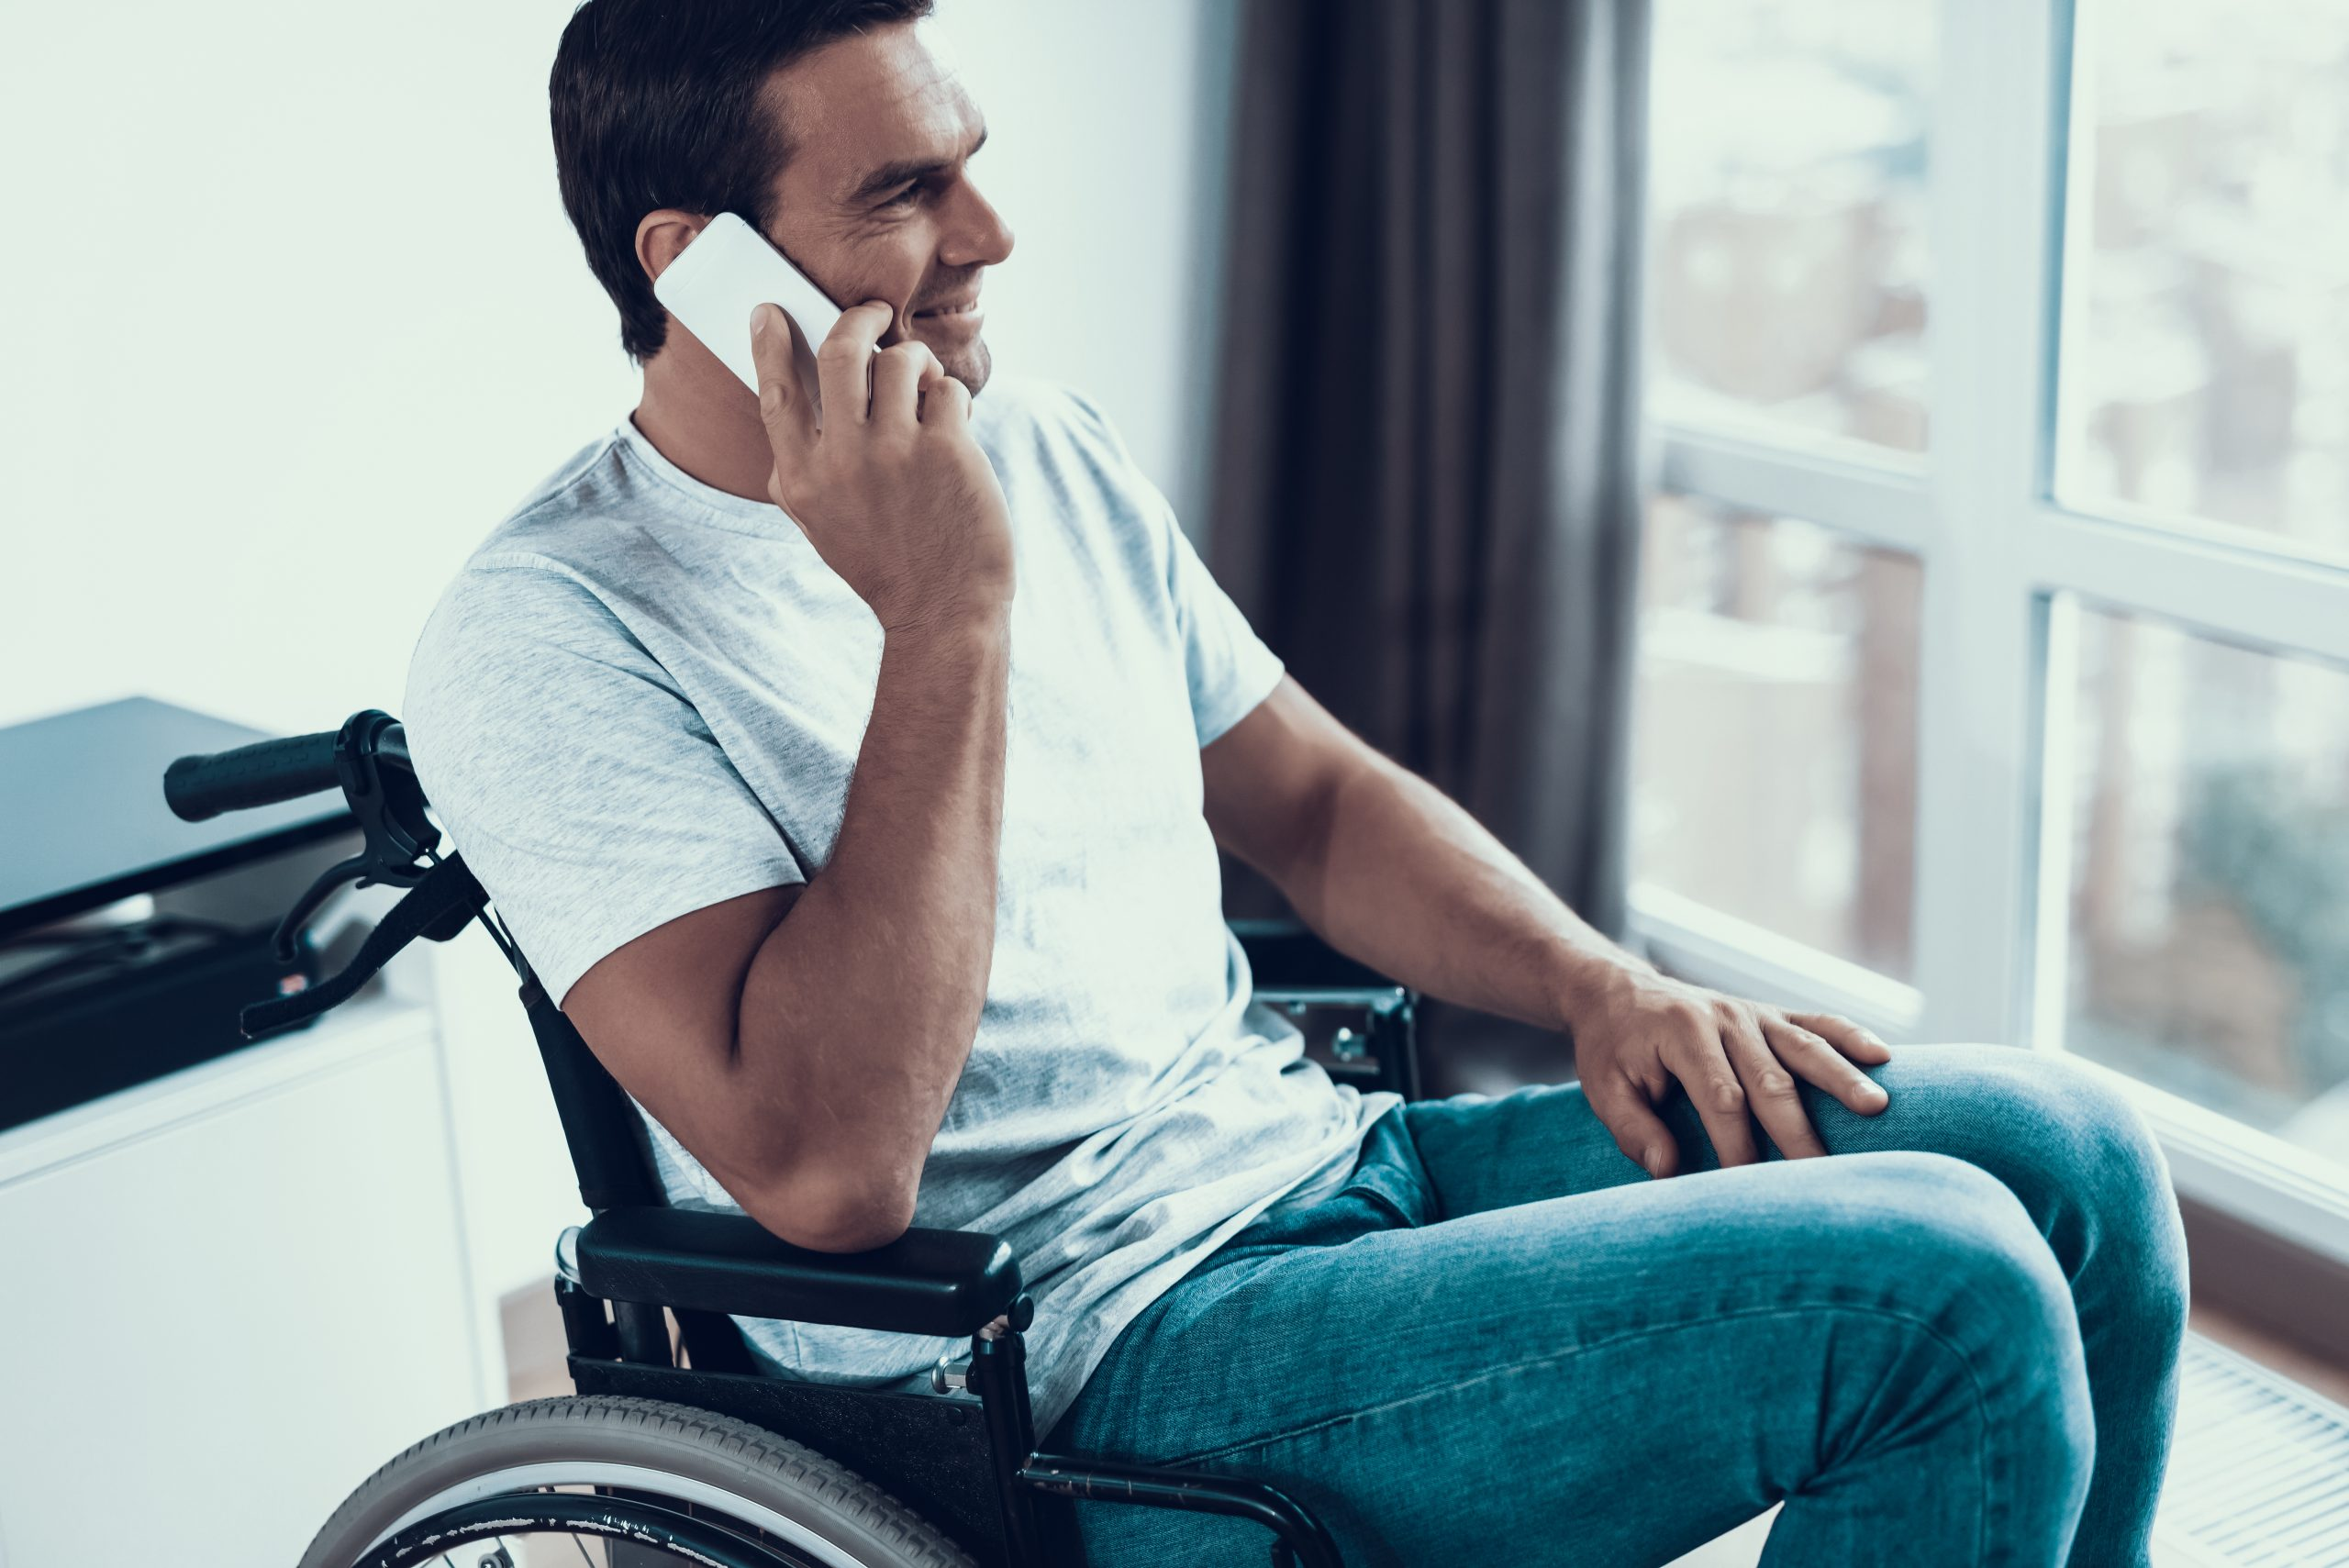 phone therapy, telehealth telehealth, over the phone therapy